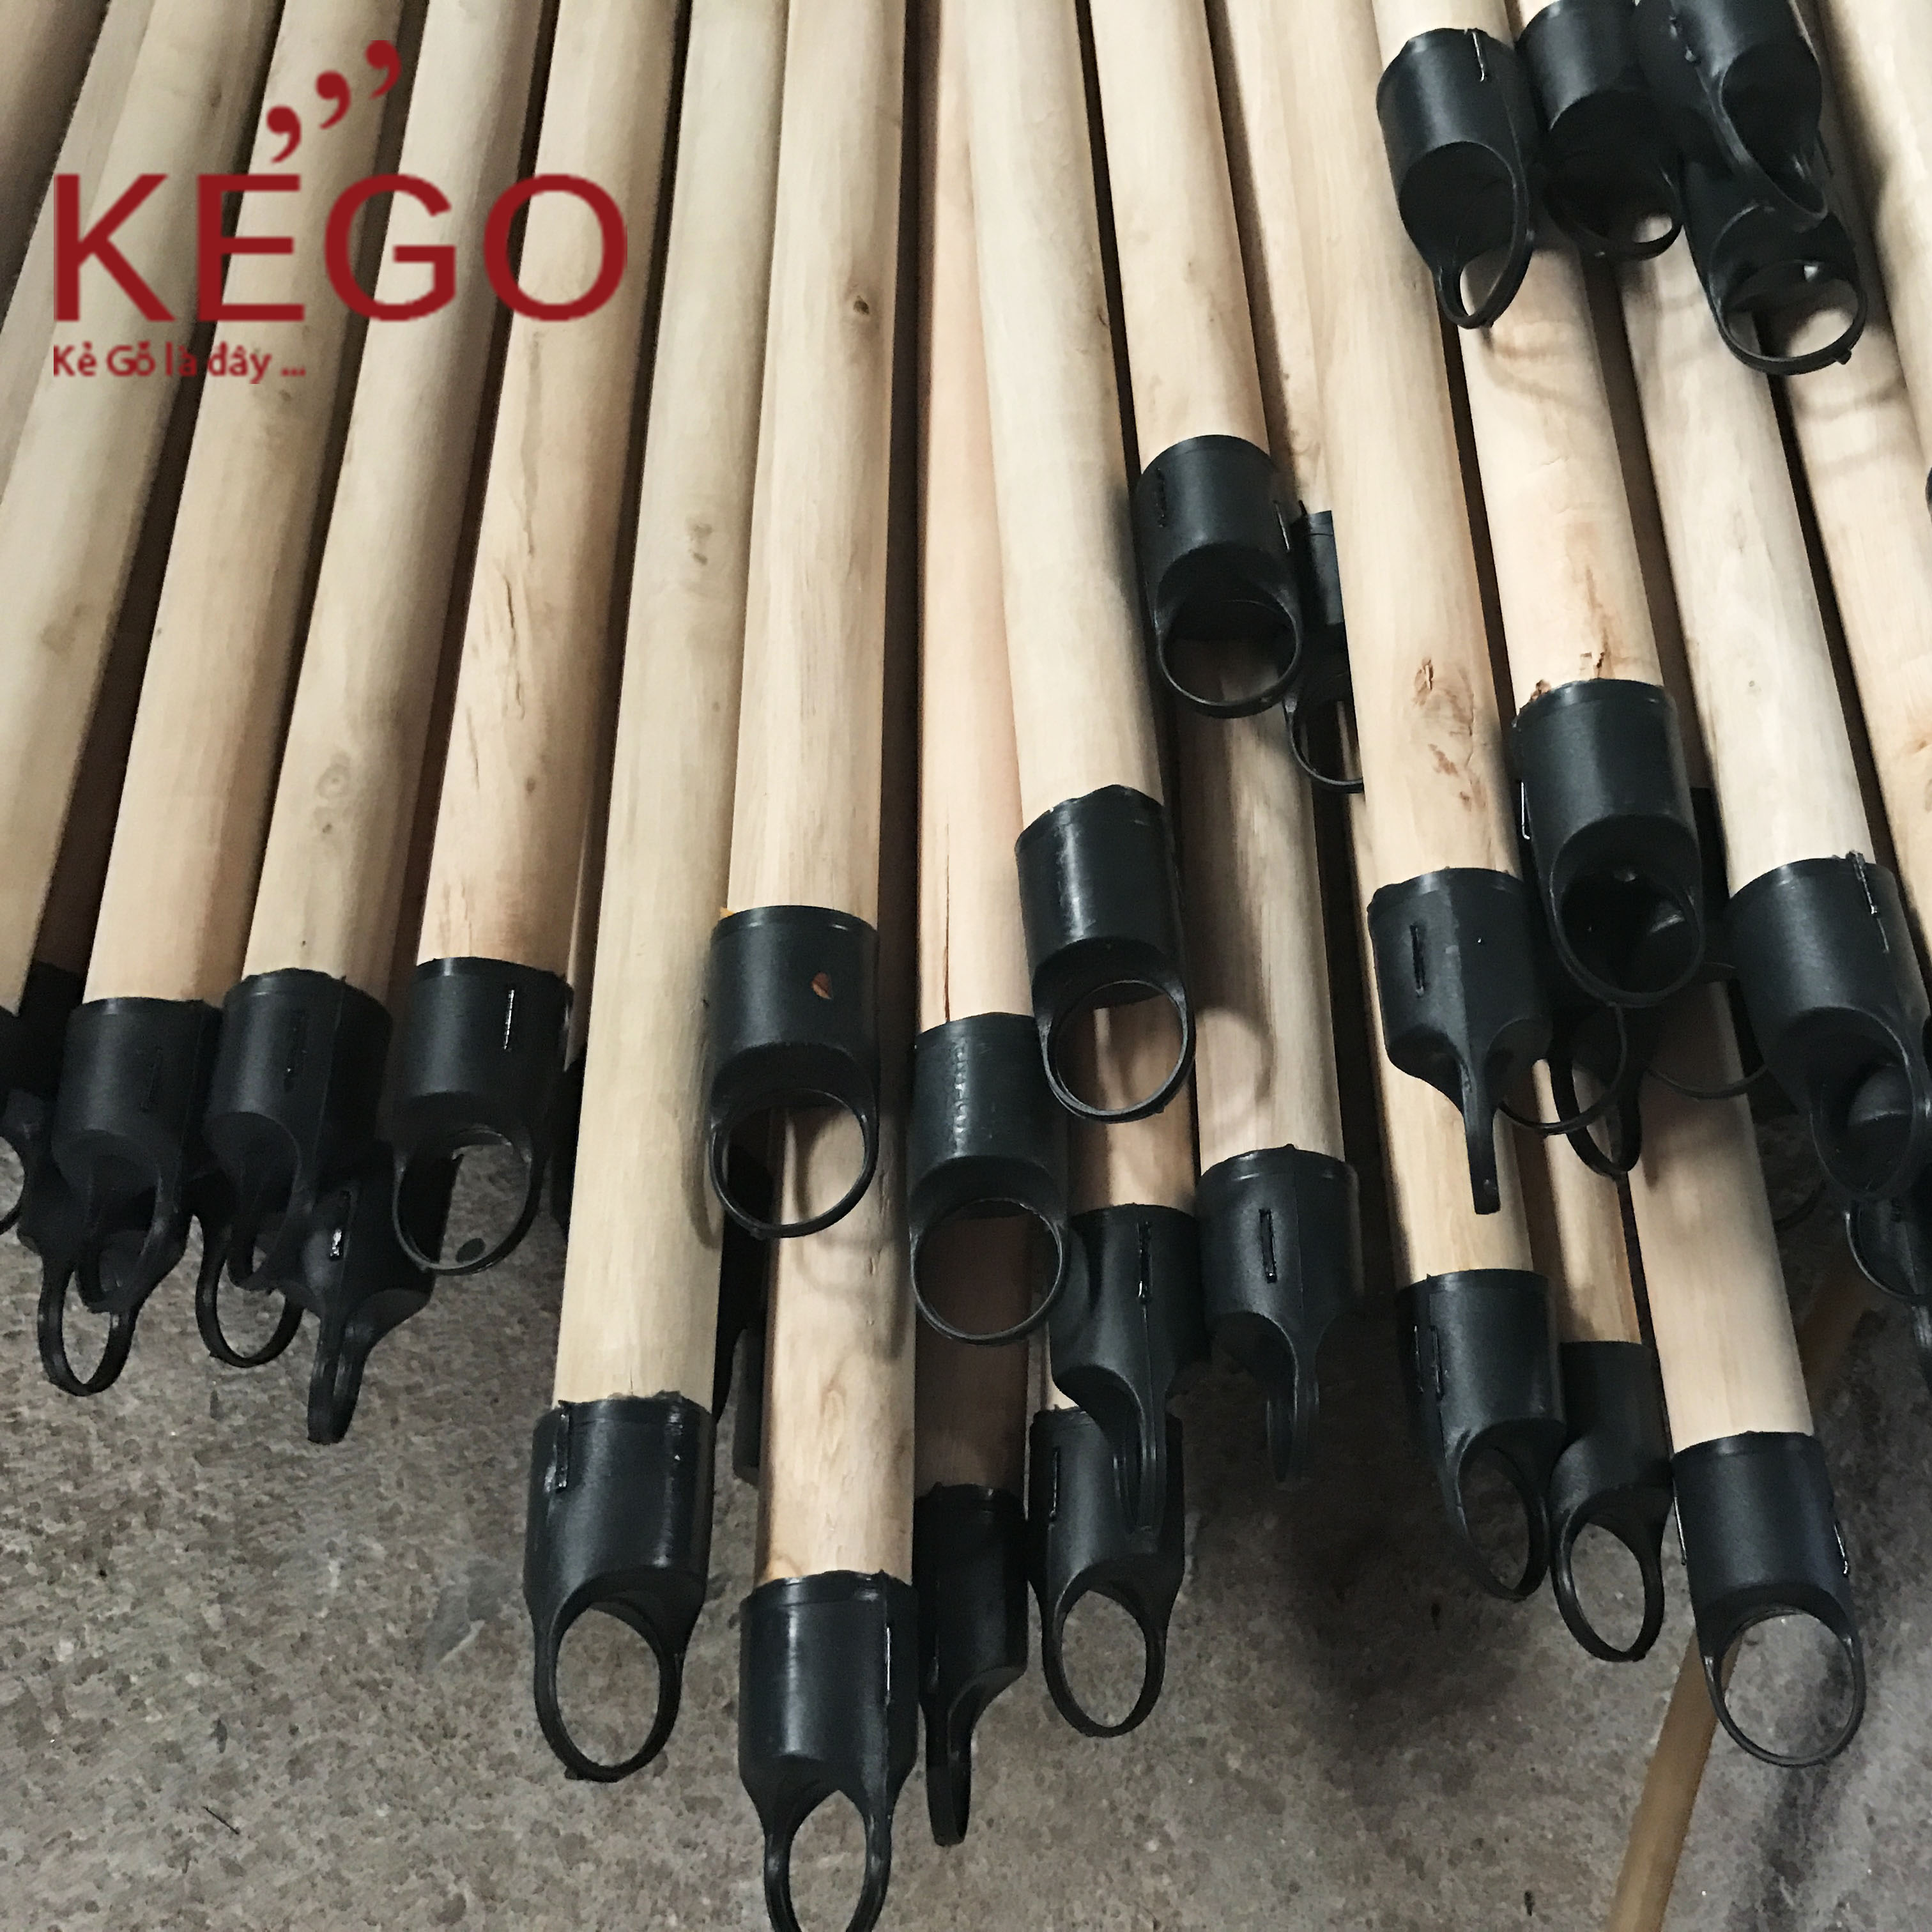 Wooden Handle for broom and mop with competitive price